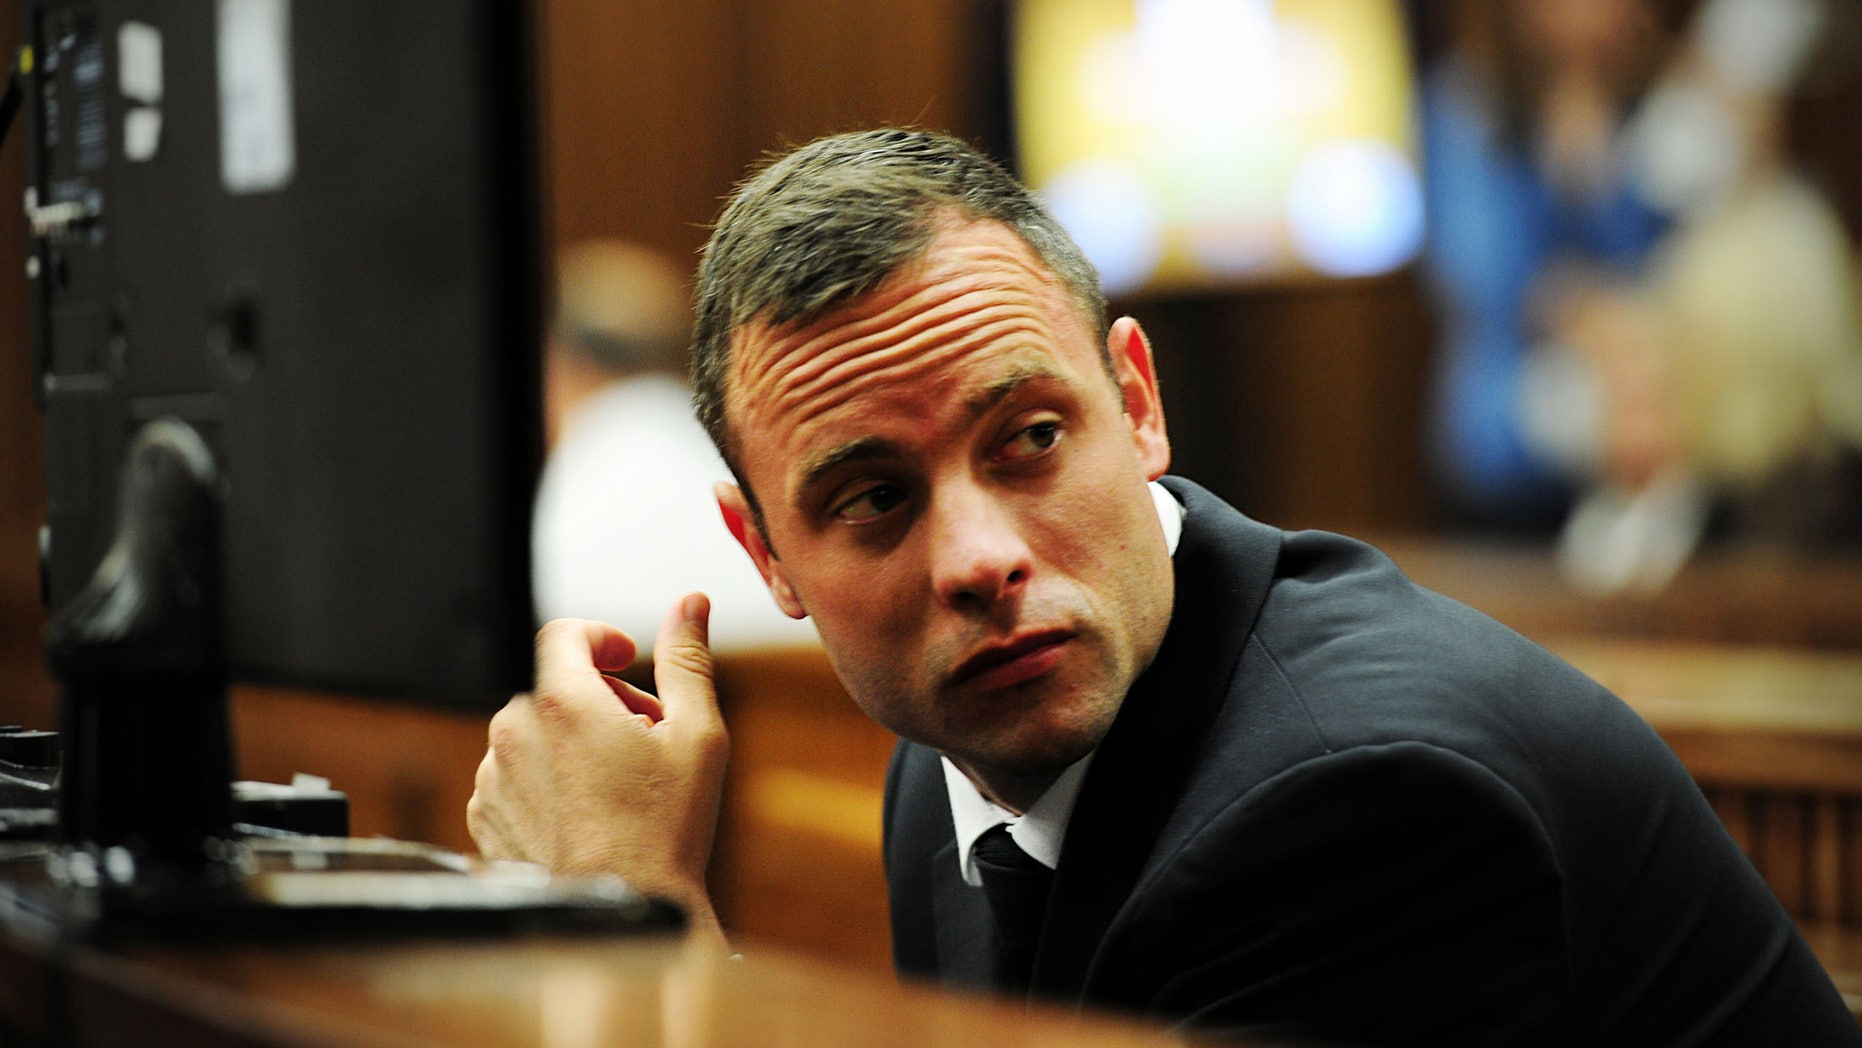 Oscar Pistorius glances sideways as he listens to ballistic evidence being given in court in Pretoria, South Africa, Wednesday, March 19, 2014. Pistorius is on trial for the murder of his girlfriend Reeva Steenkamp on Valentine's Day in 2013. (AP Photo/Leon Sadiki, Pool)